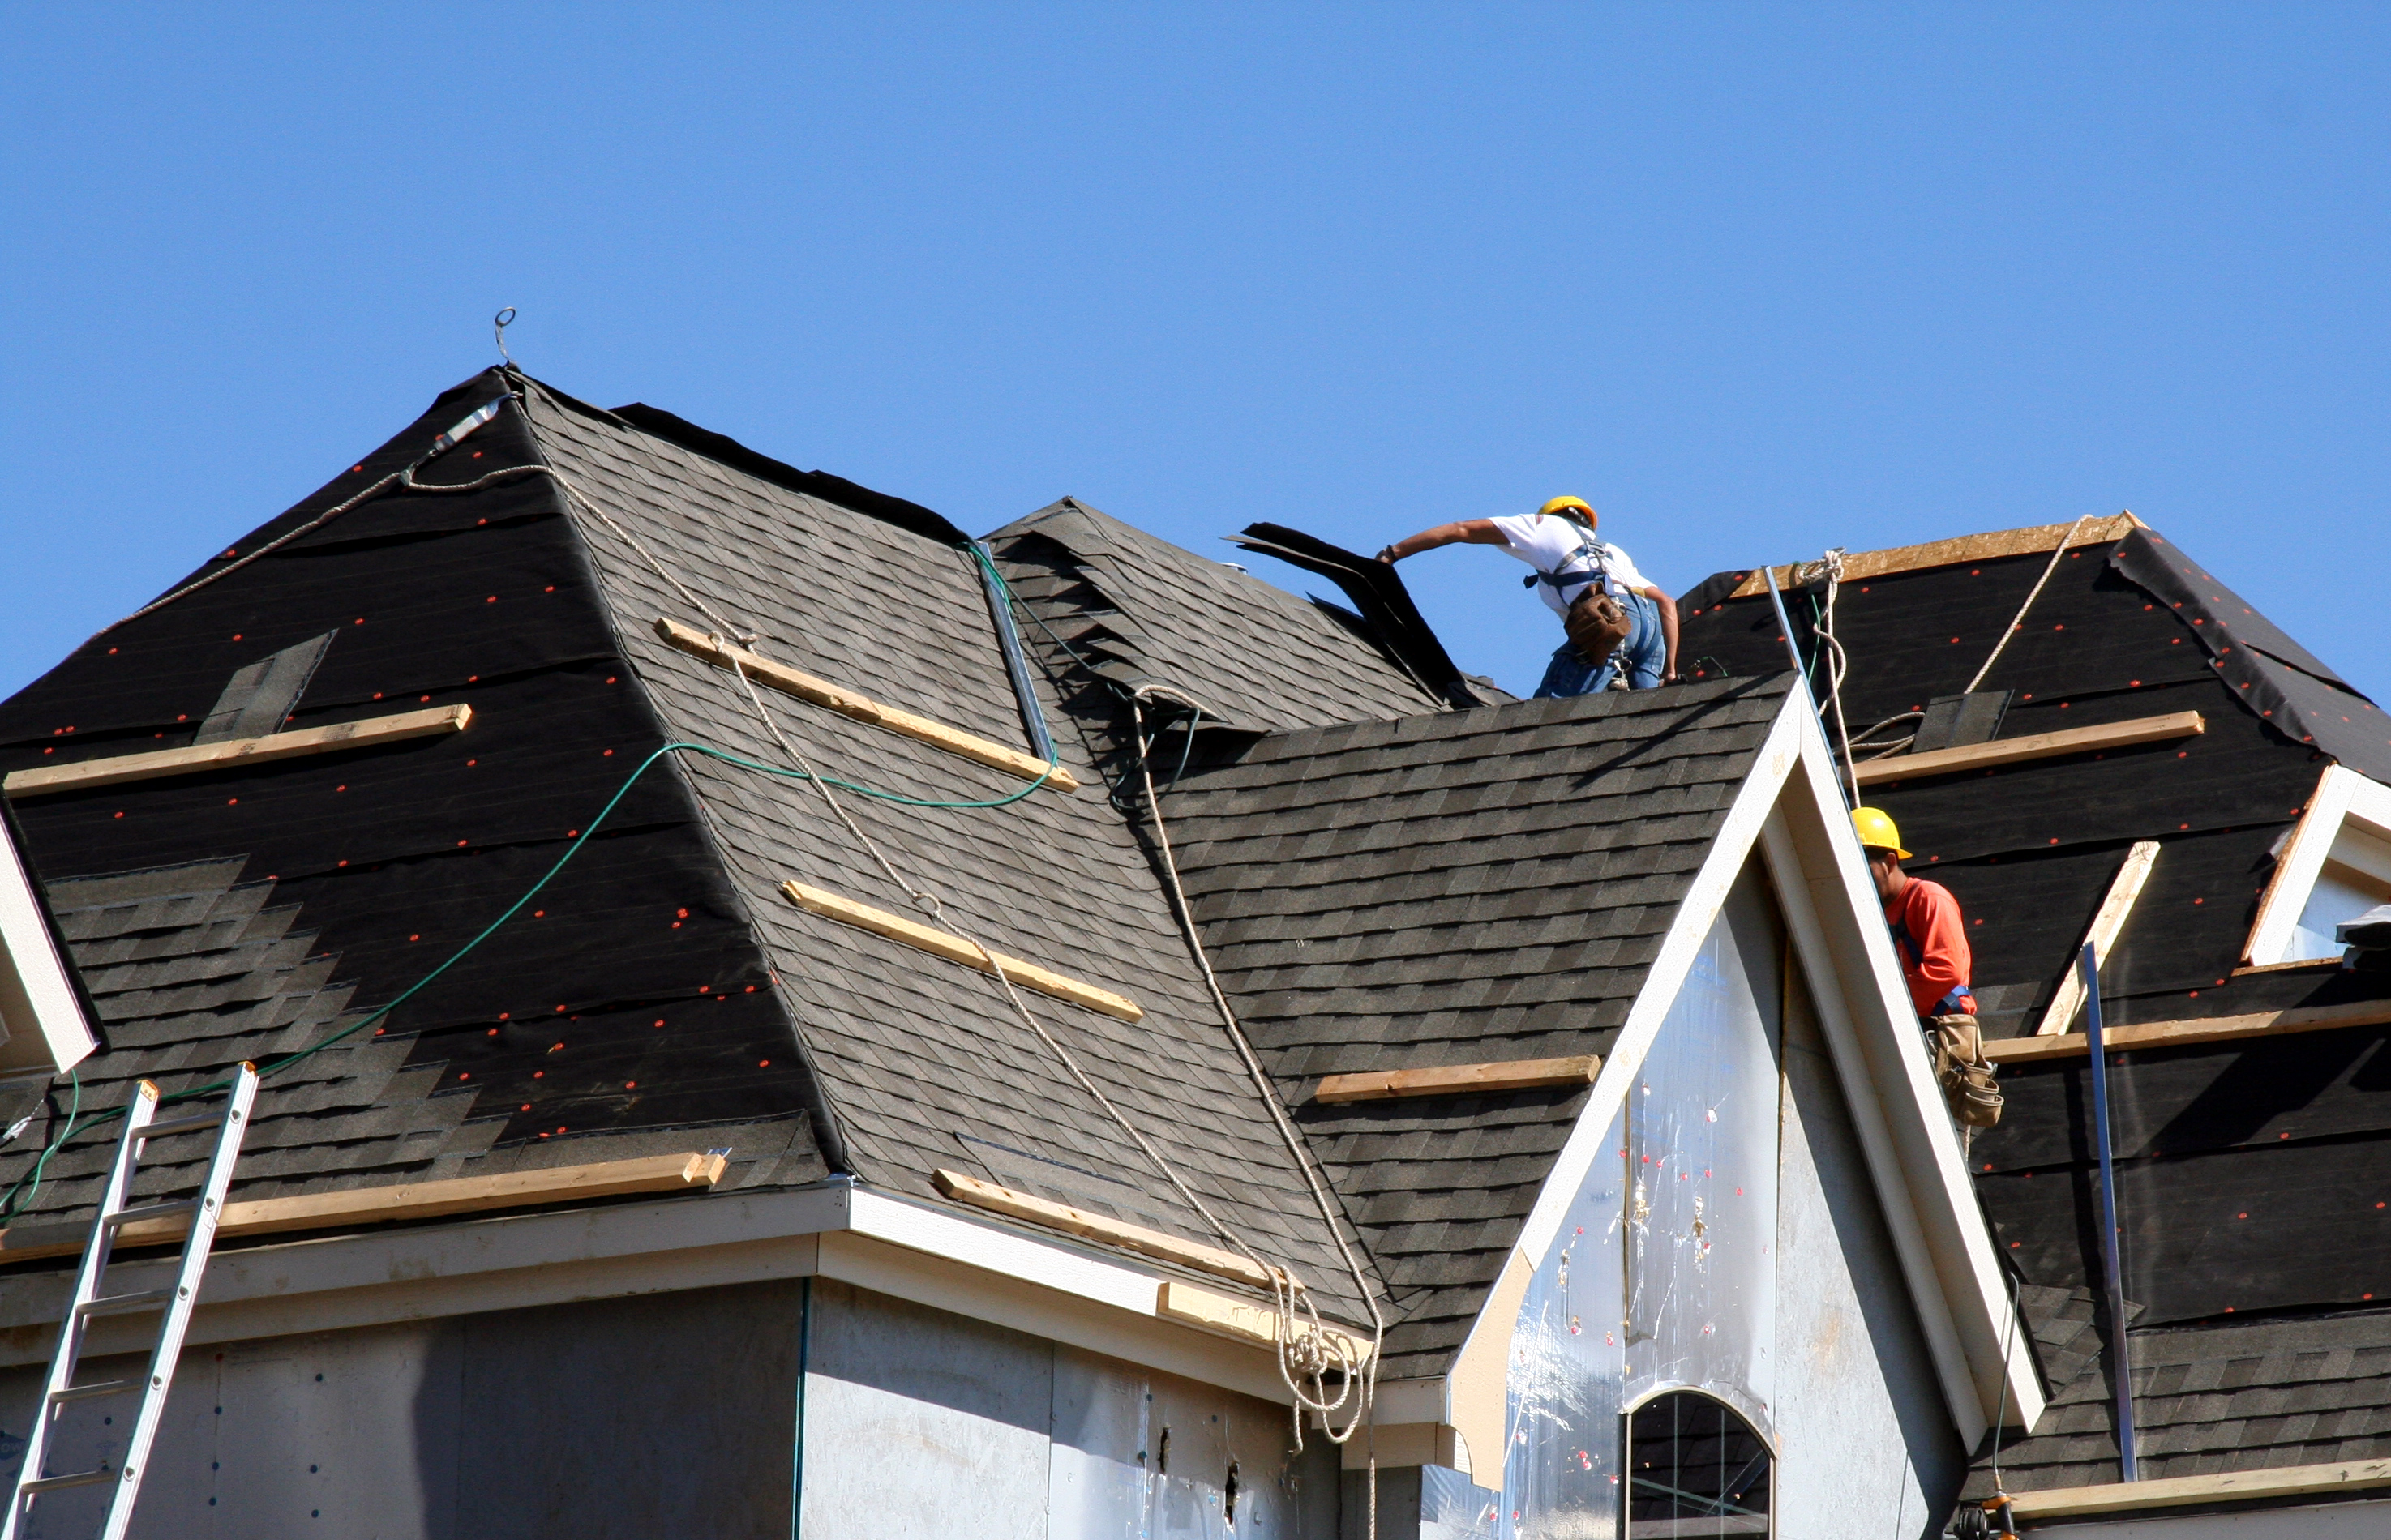 The experts at Thomas Quality Construction provide complete roof installation solutions in the greater Lexington area.